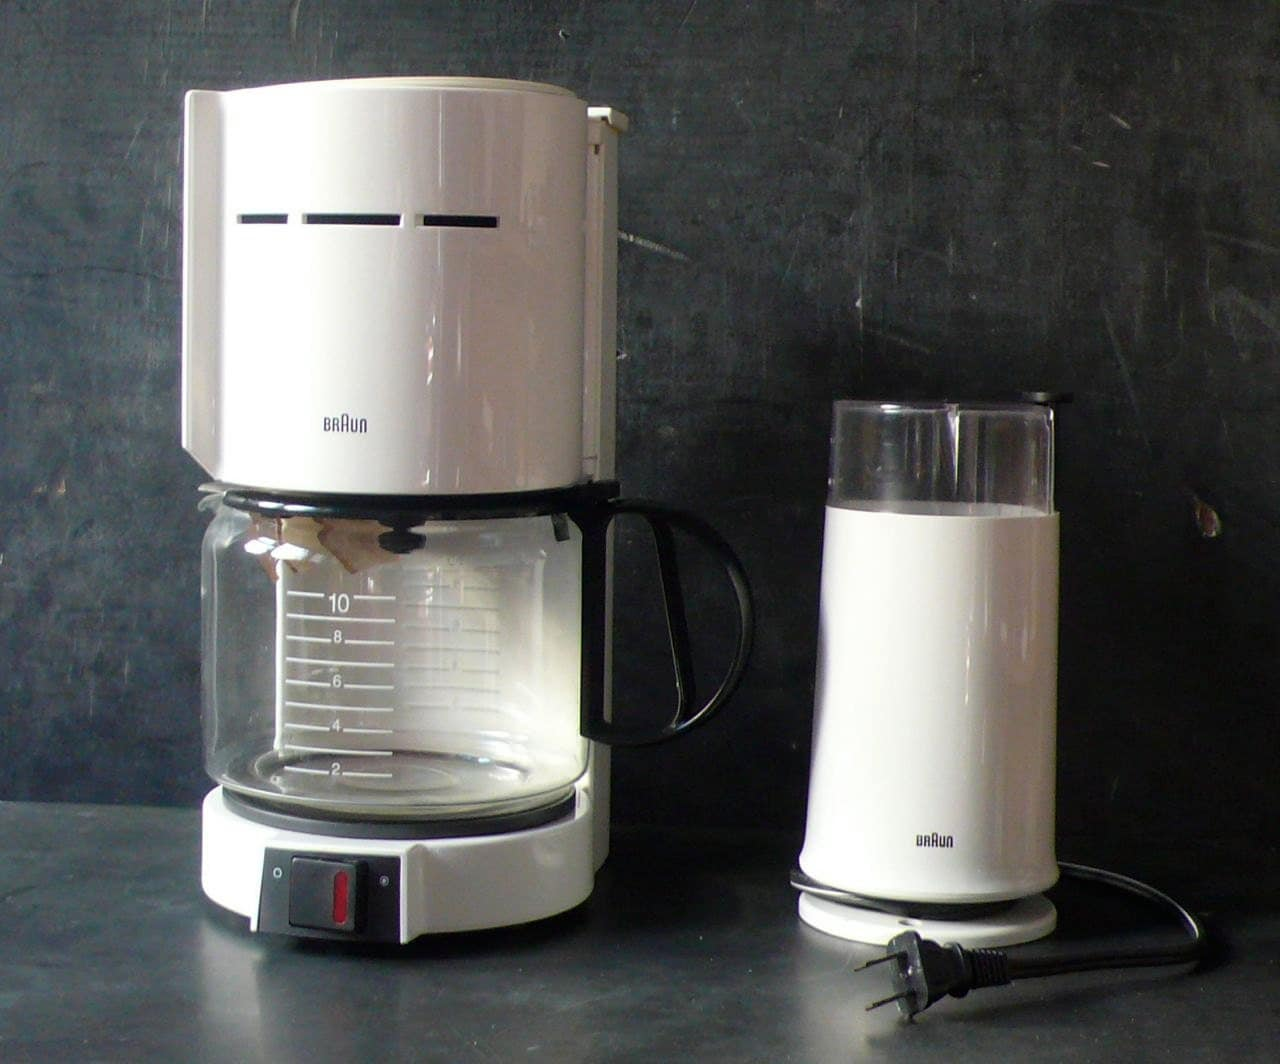 Filter Coffee Maker Machine Makes Jug or Cup of Coffee 950w eBay - Coffeemaker